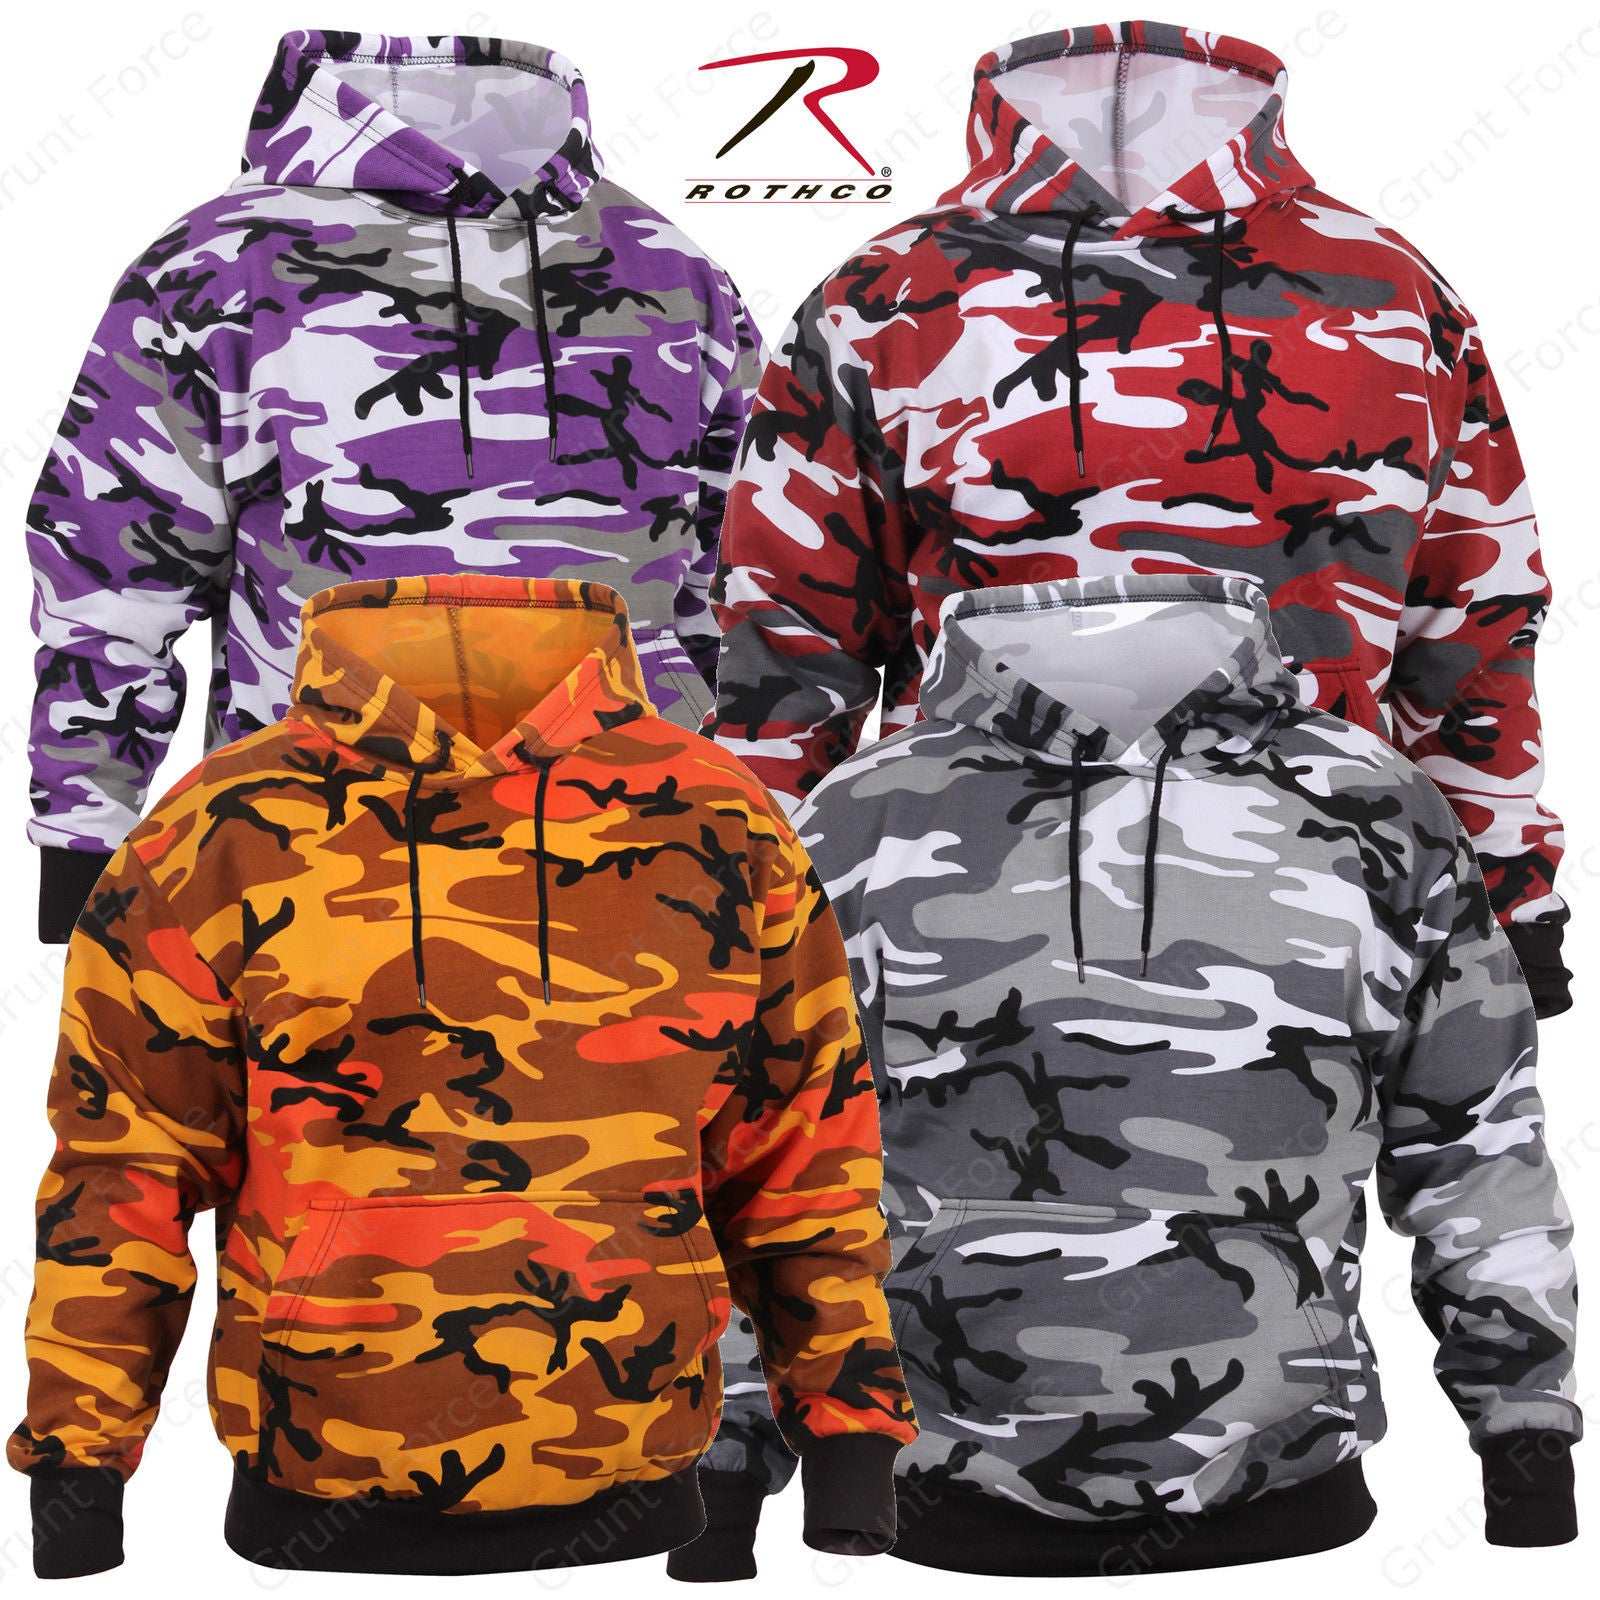 9eed59ff Rothco Camo Pullover Hoodie - Military Style Camouflage Hooded Sweatshirt  Ultra Violet Camo Savage Orange ...